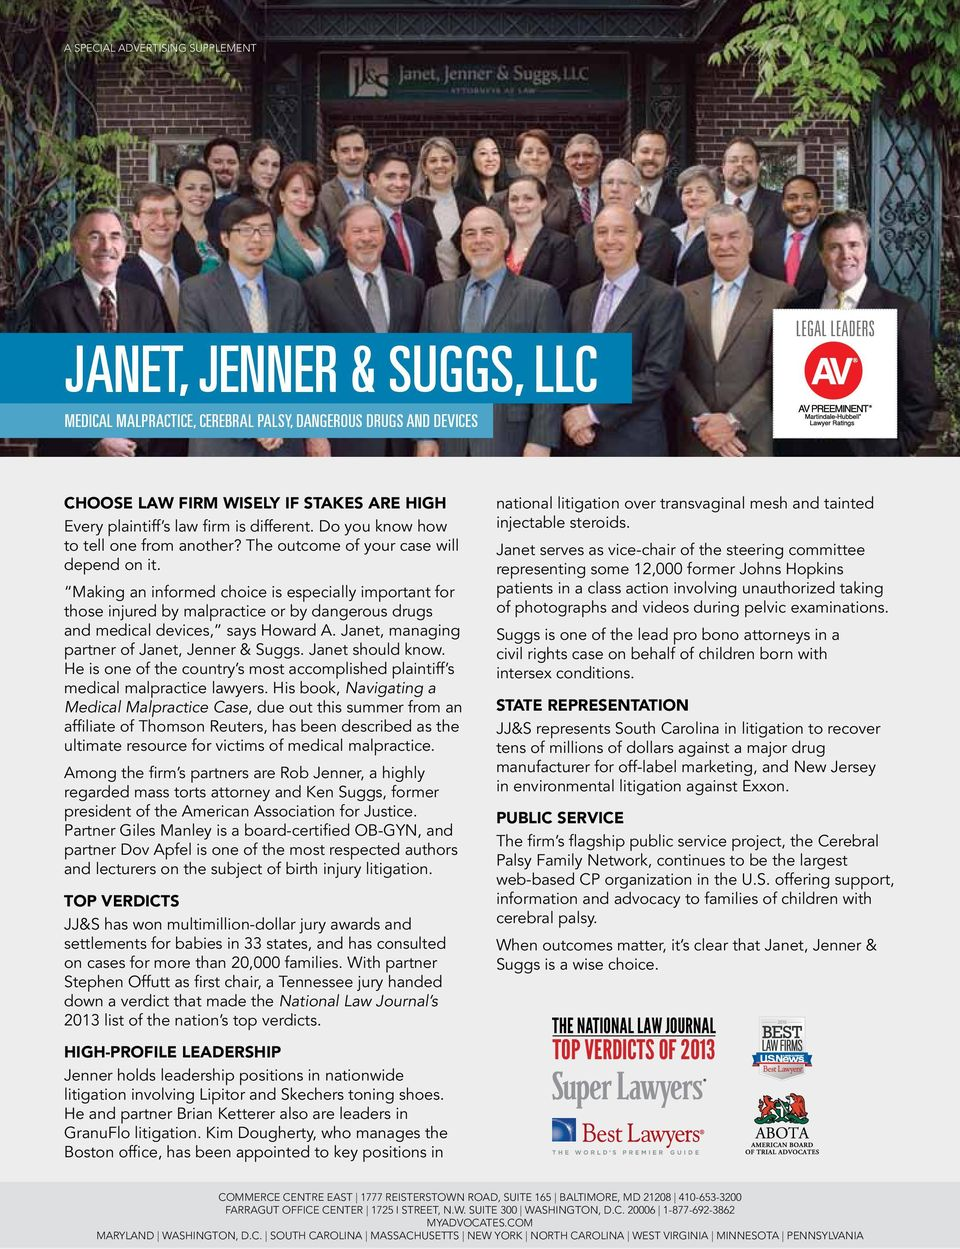 Making an informed choice is especially important for those injured by malpractice or by dangerous drugs and medical devices, says Howard A. Janet, managing partner of Janet, Jenner & Suggs.